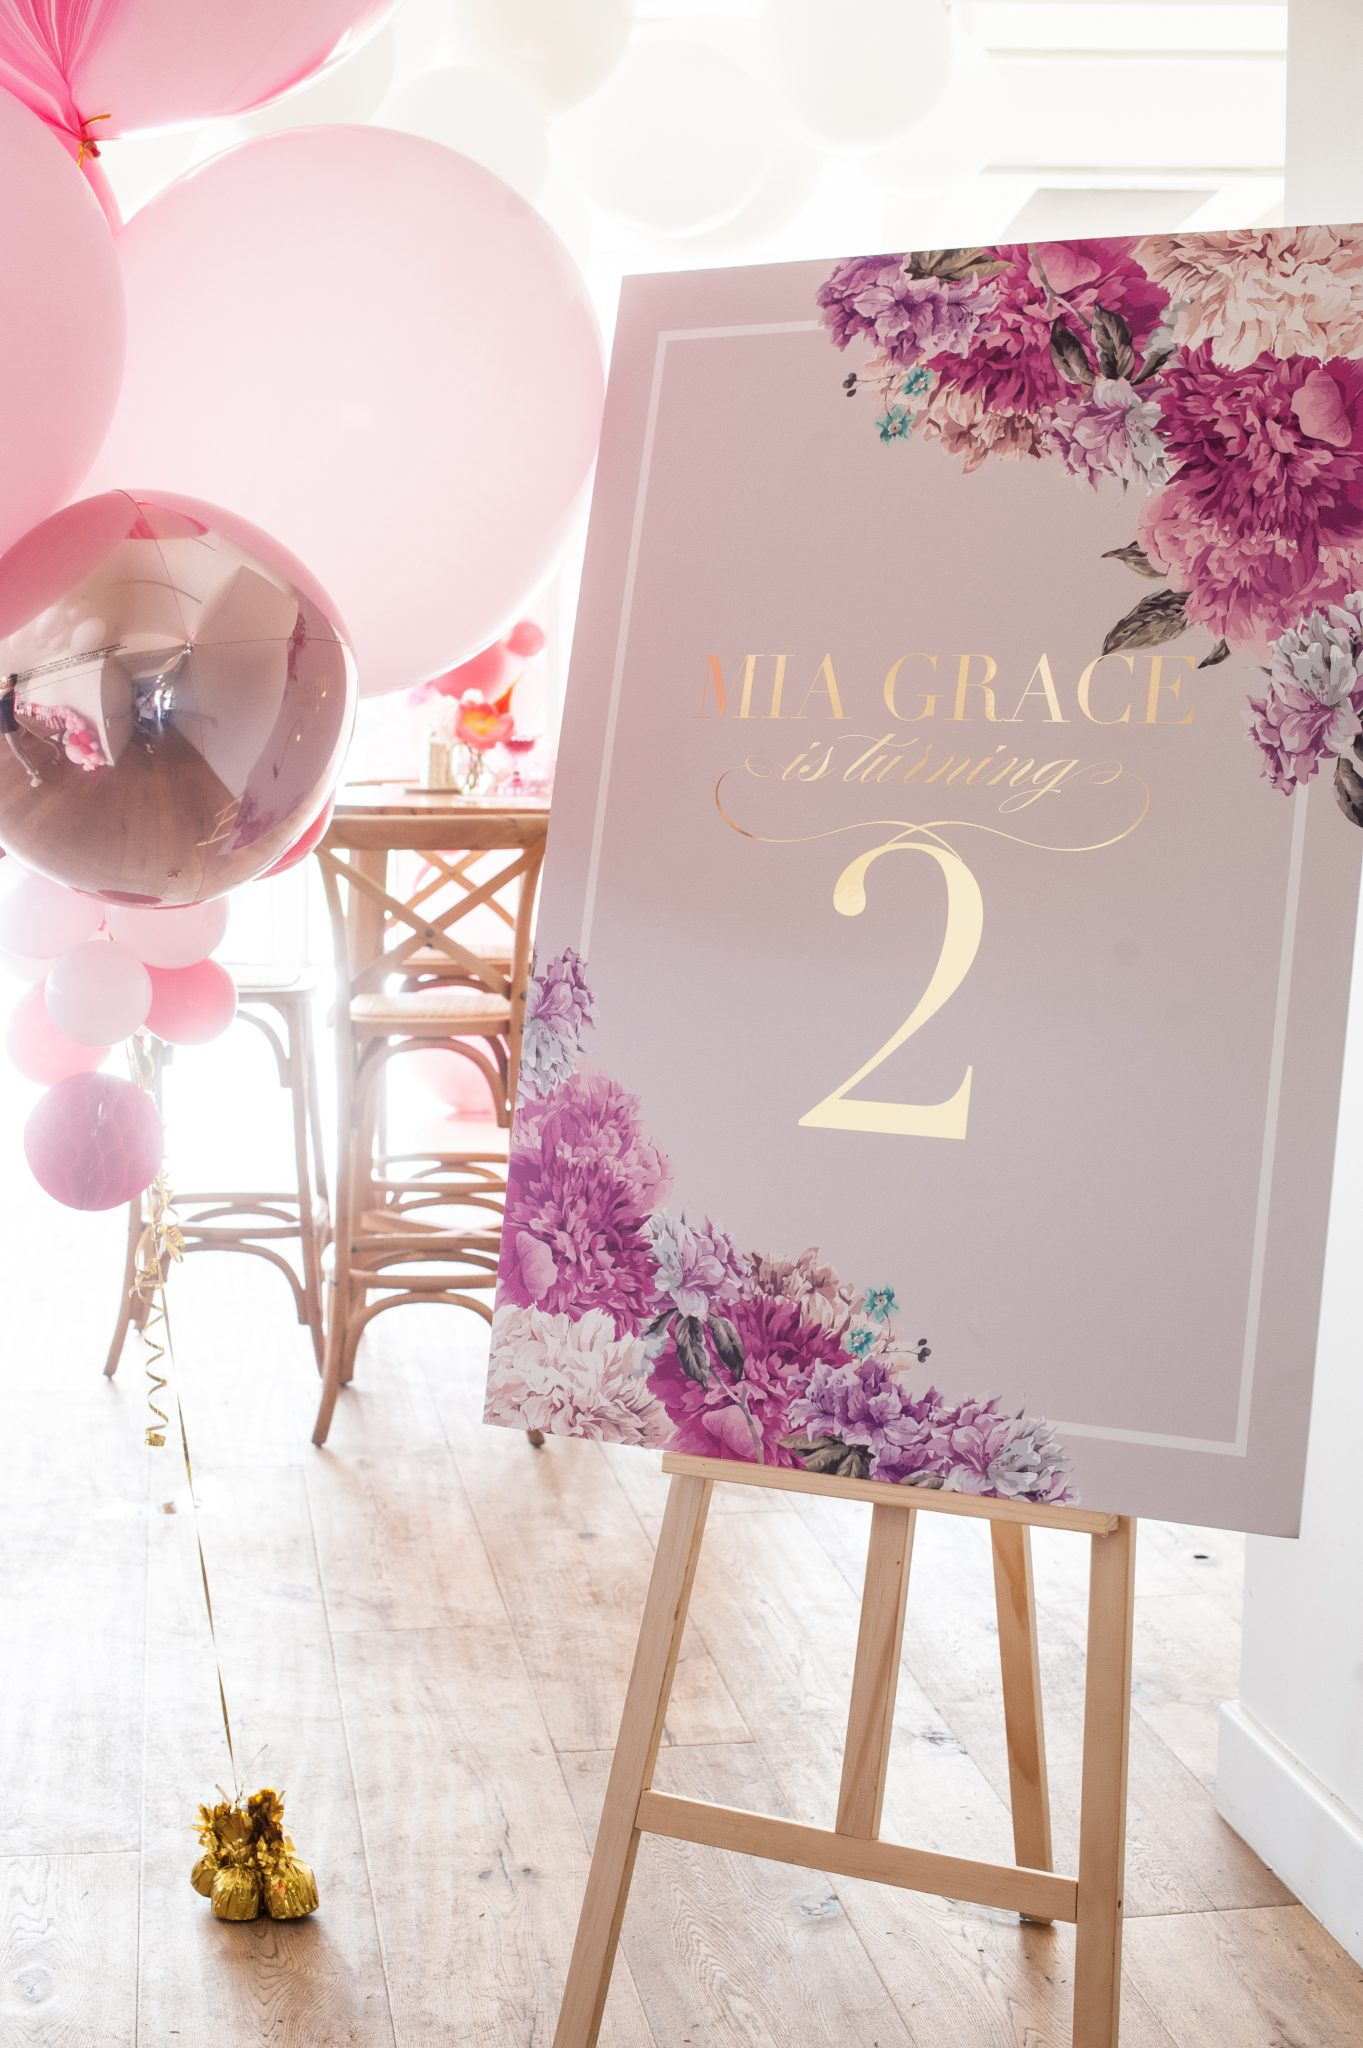 SARAH JANE YOUNG, MG TURNS TWO, BOUTIQUE BALLOONS MELBOURNE, GREENFIELDS, GREENFIELDS ALBERT PARK, ATLANTIC GROUP, MARY MARY STUDIO, LITTLE BIG LETTER CO, STYLING, PINK STYLING, SARAH JANE YOUNG, SHEISSARAHJANE, LITTLE PARTY FACES, PEPPA PIG, MINNIE MOUSE, PEPPA PIG PARTY